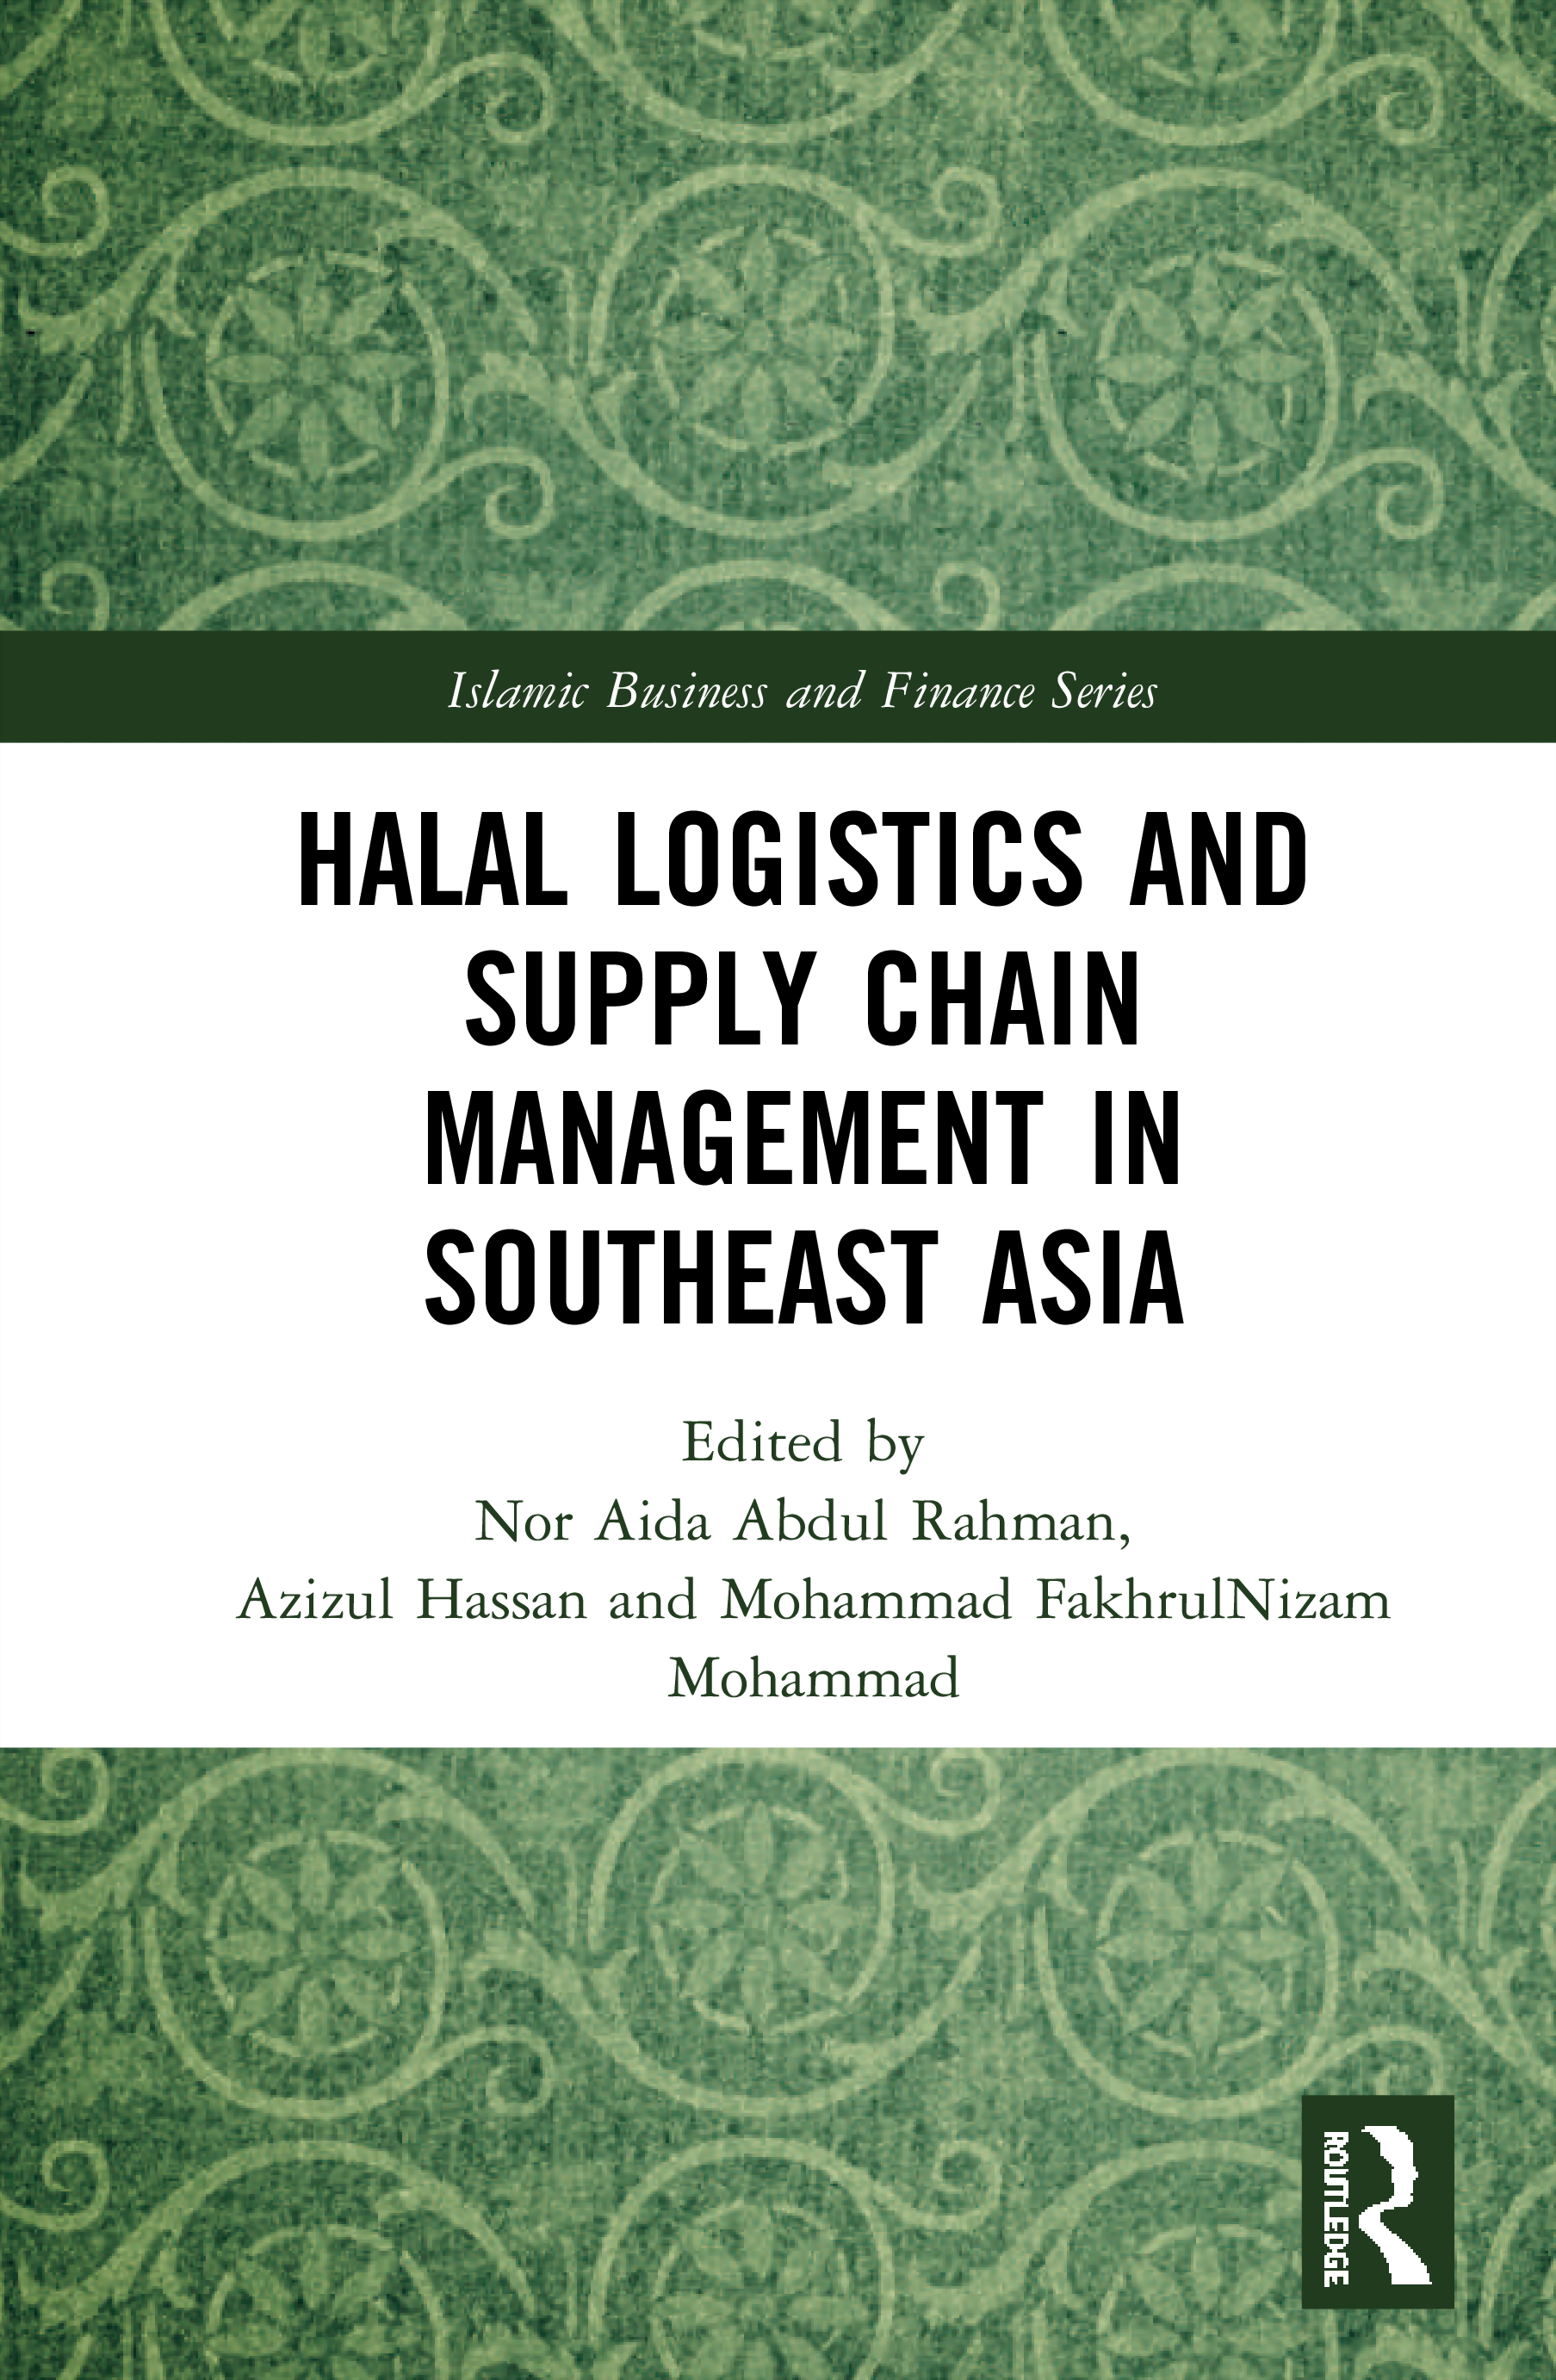 Halal Logistics and Supply Chain Management in Southeast Asia book cover